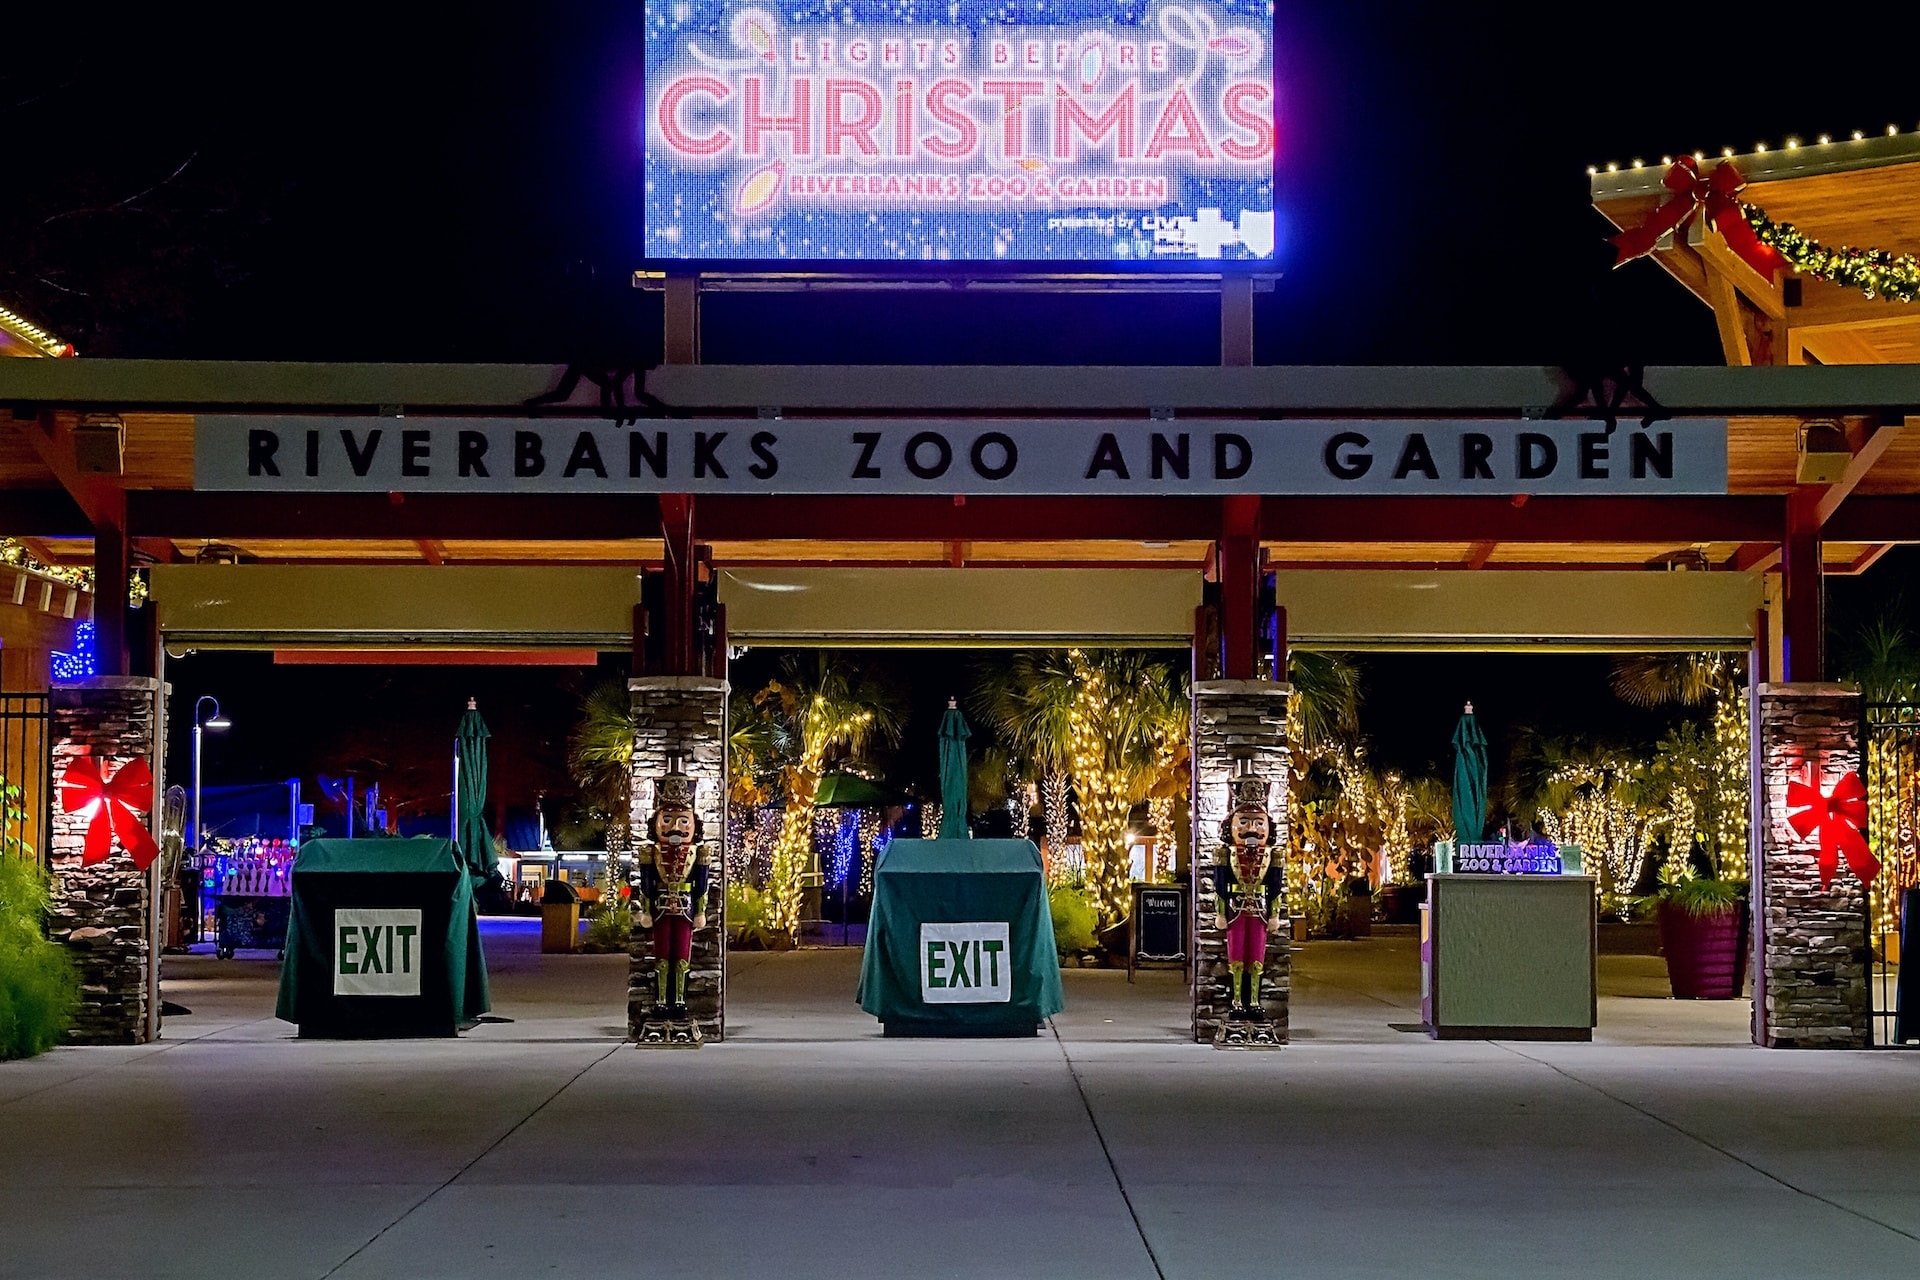 Entrance to the Lights Before Christmas at the Riverbanks Zoo, a unique Holiday Party Venue, in Columbia, South Carolina